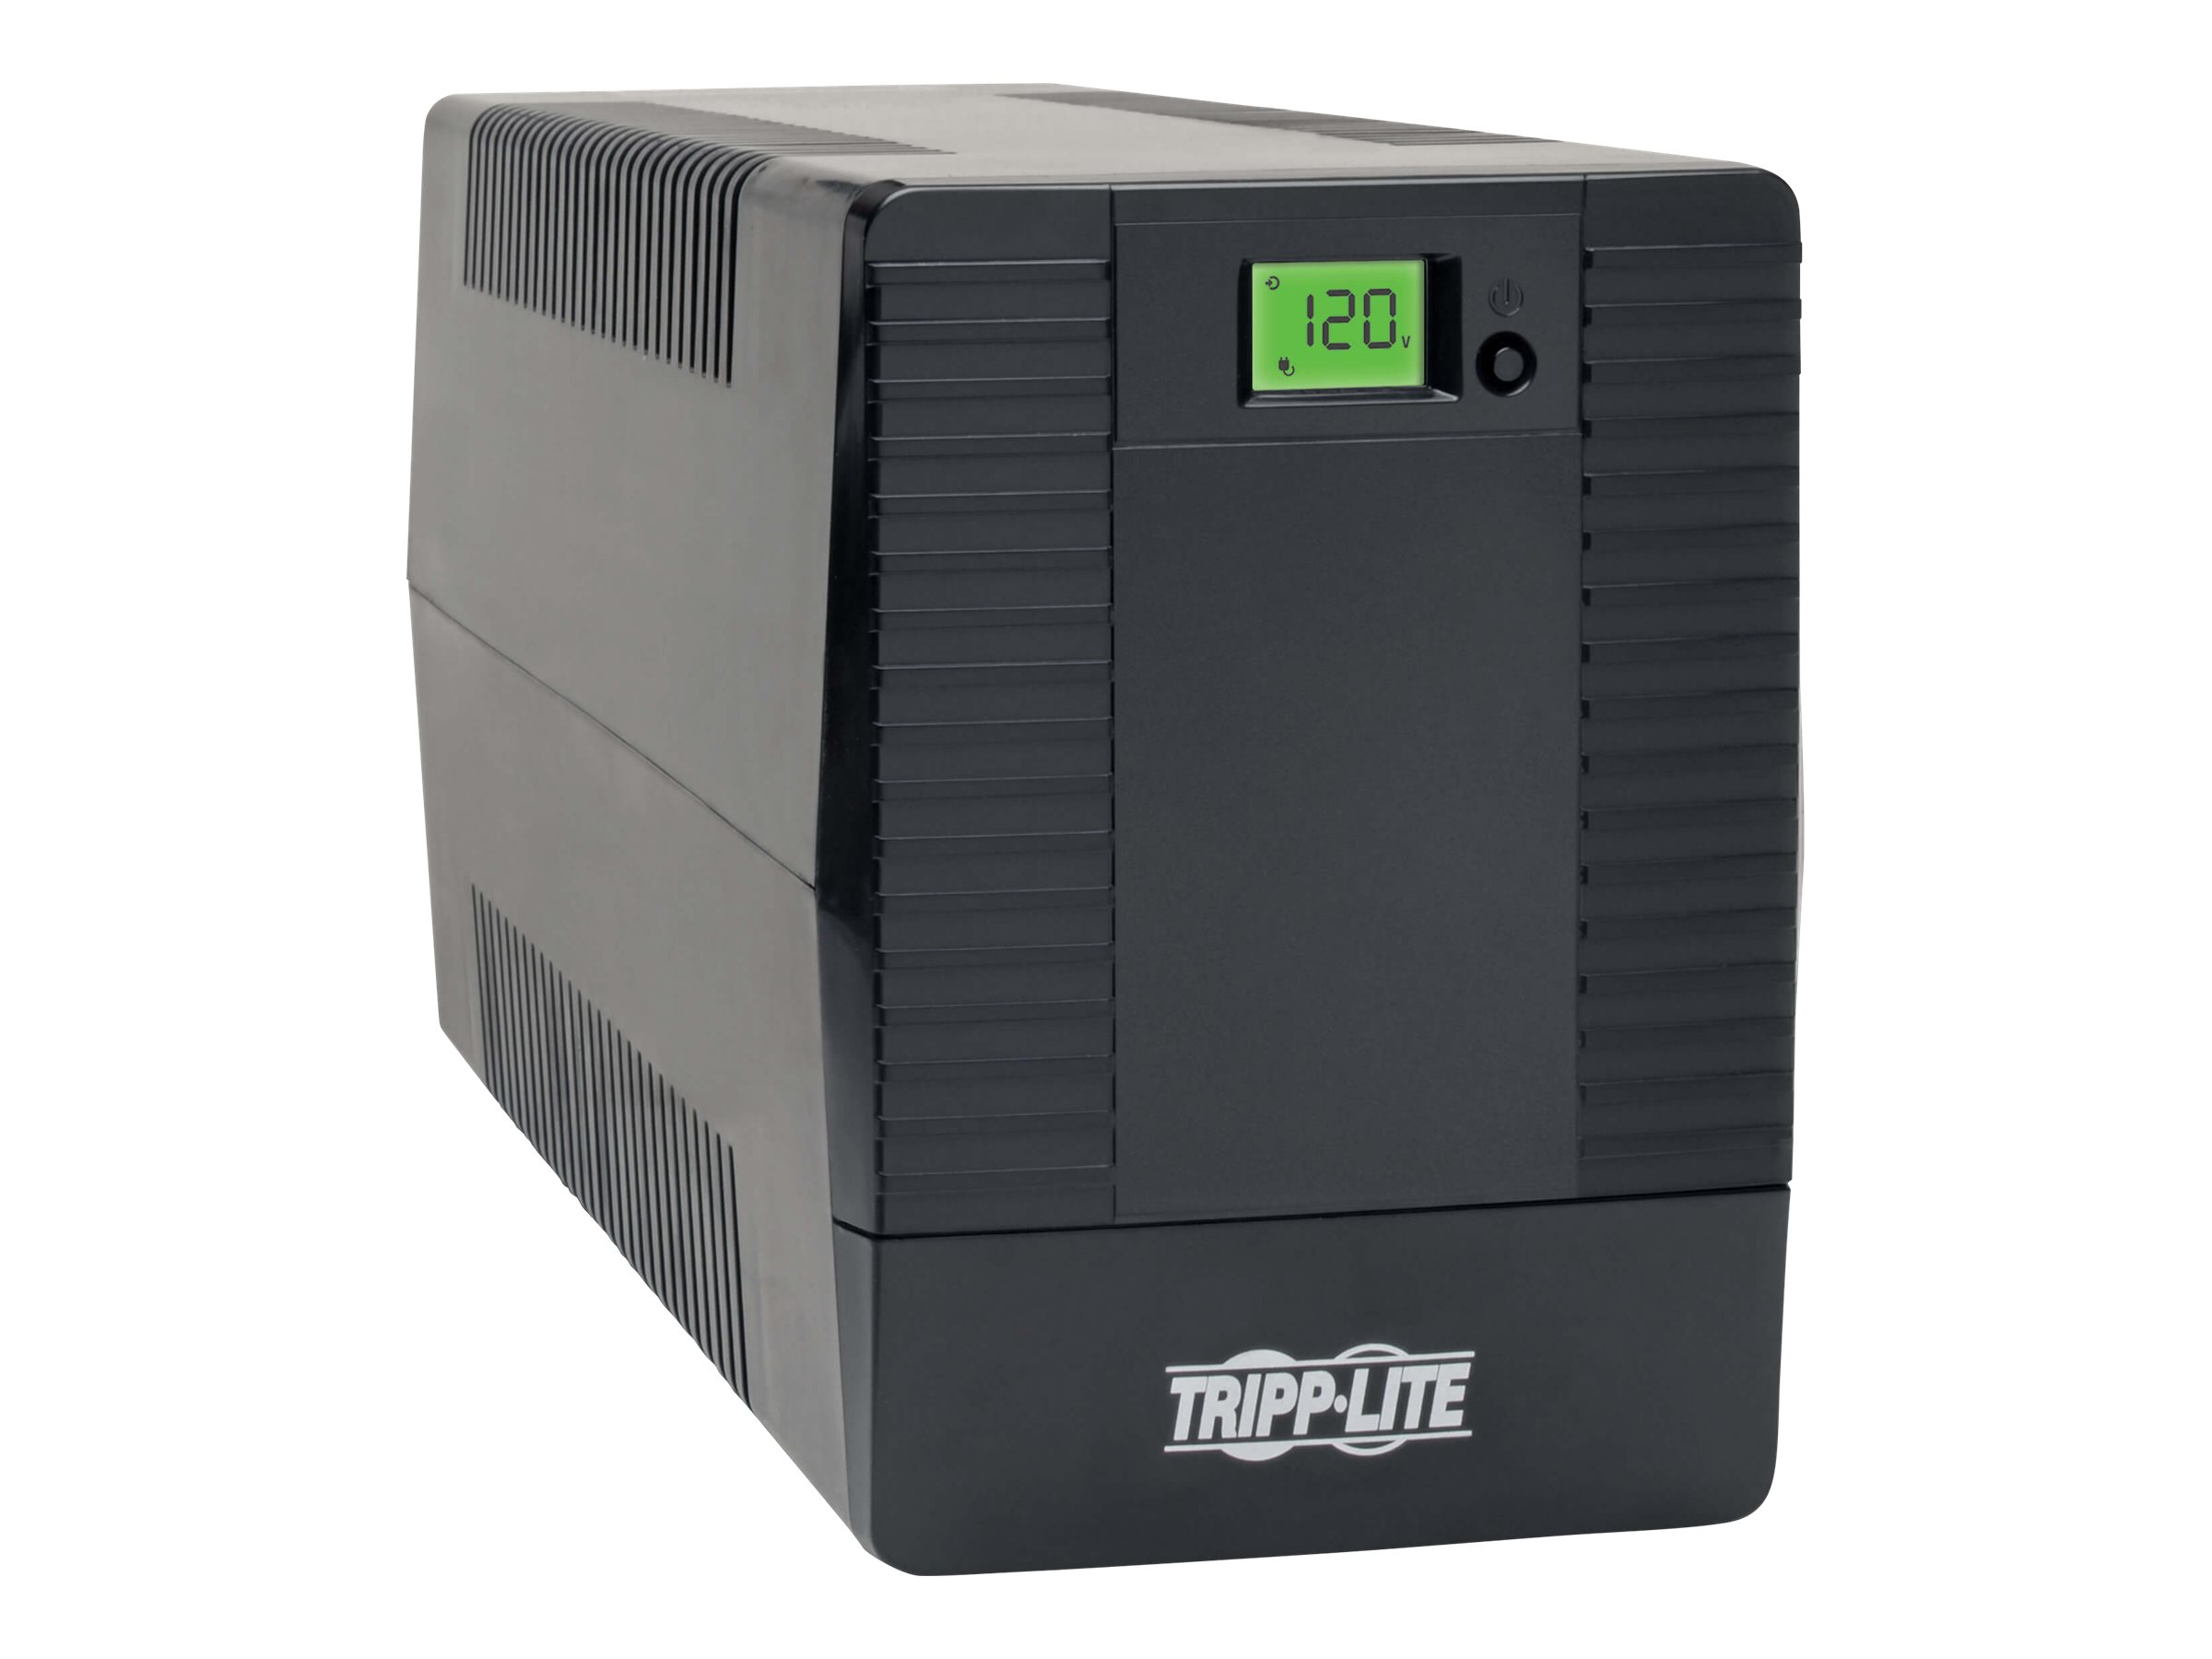 Tripp Lite 700VA 480W UPS Smart Tower Battery Back Up Desktop AVR LCD USB - UPS - 480 Watt - 700 VA